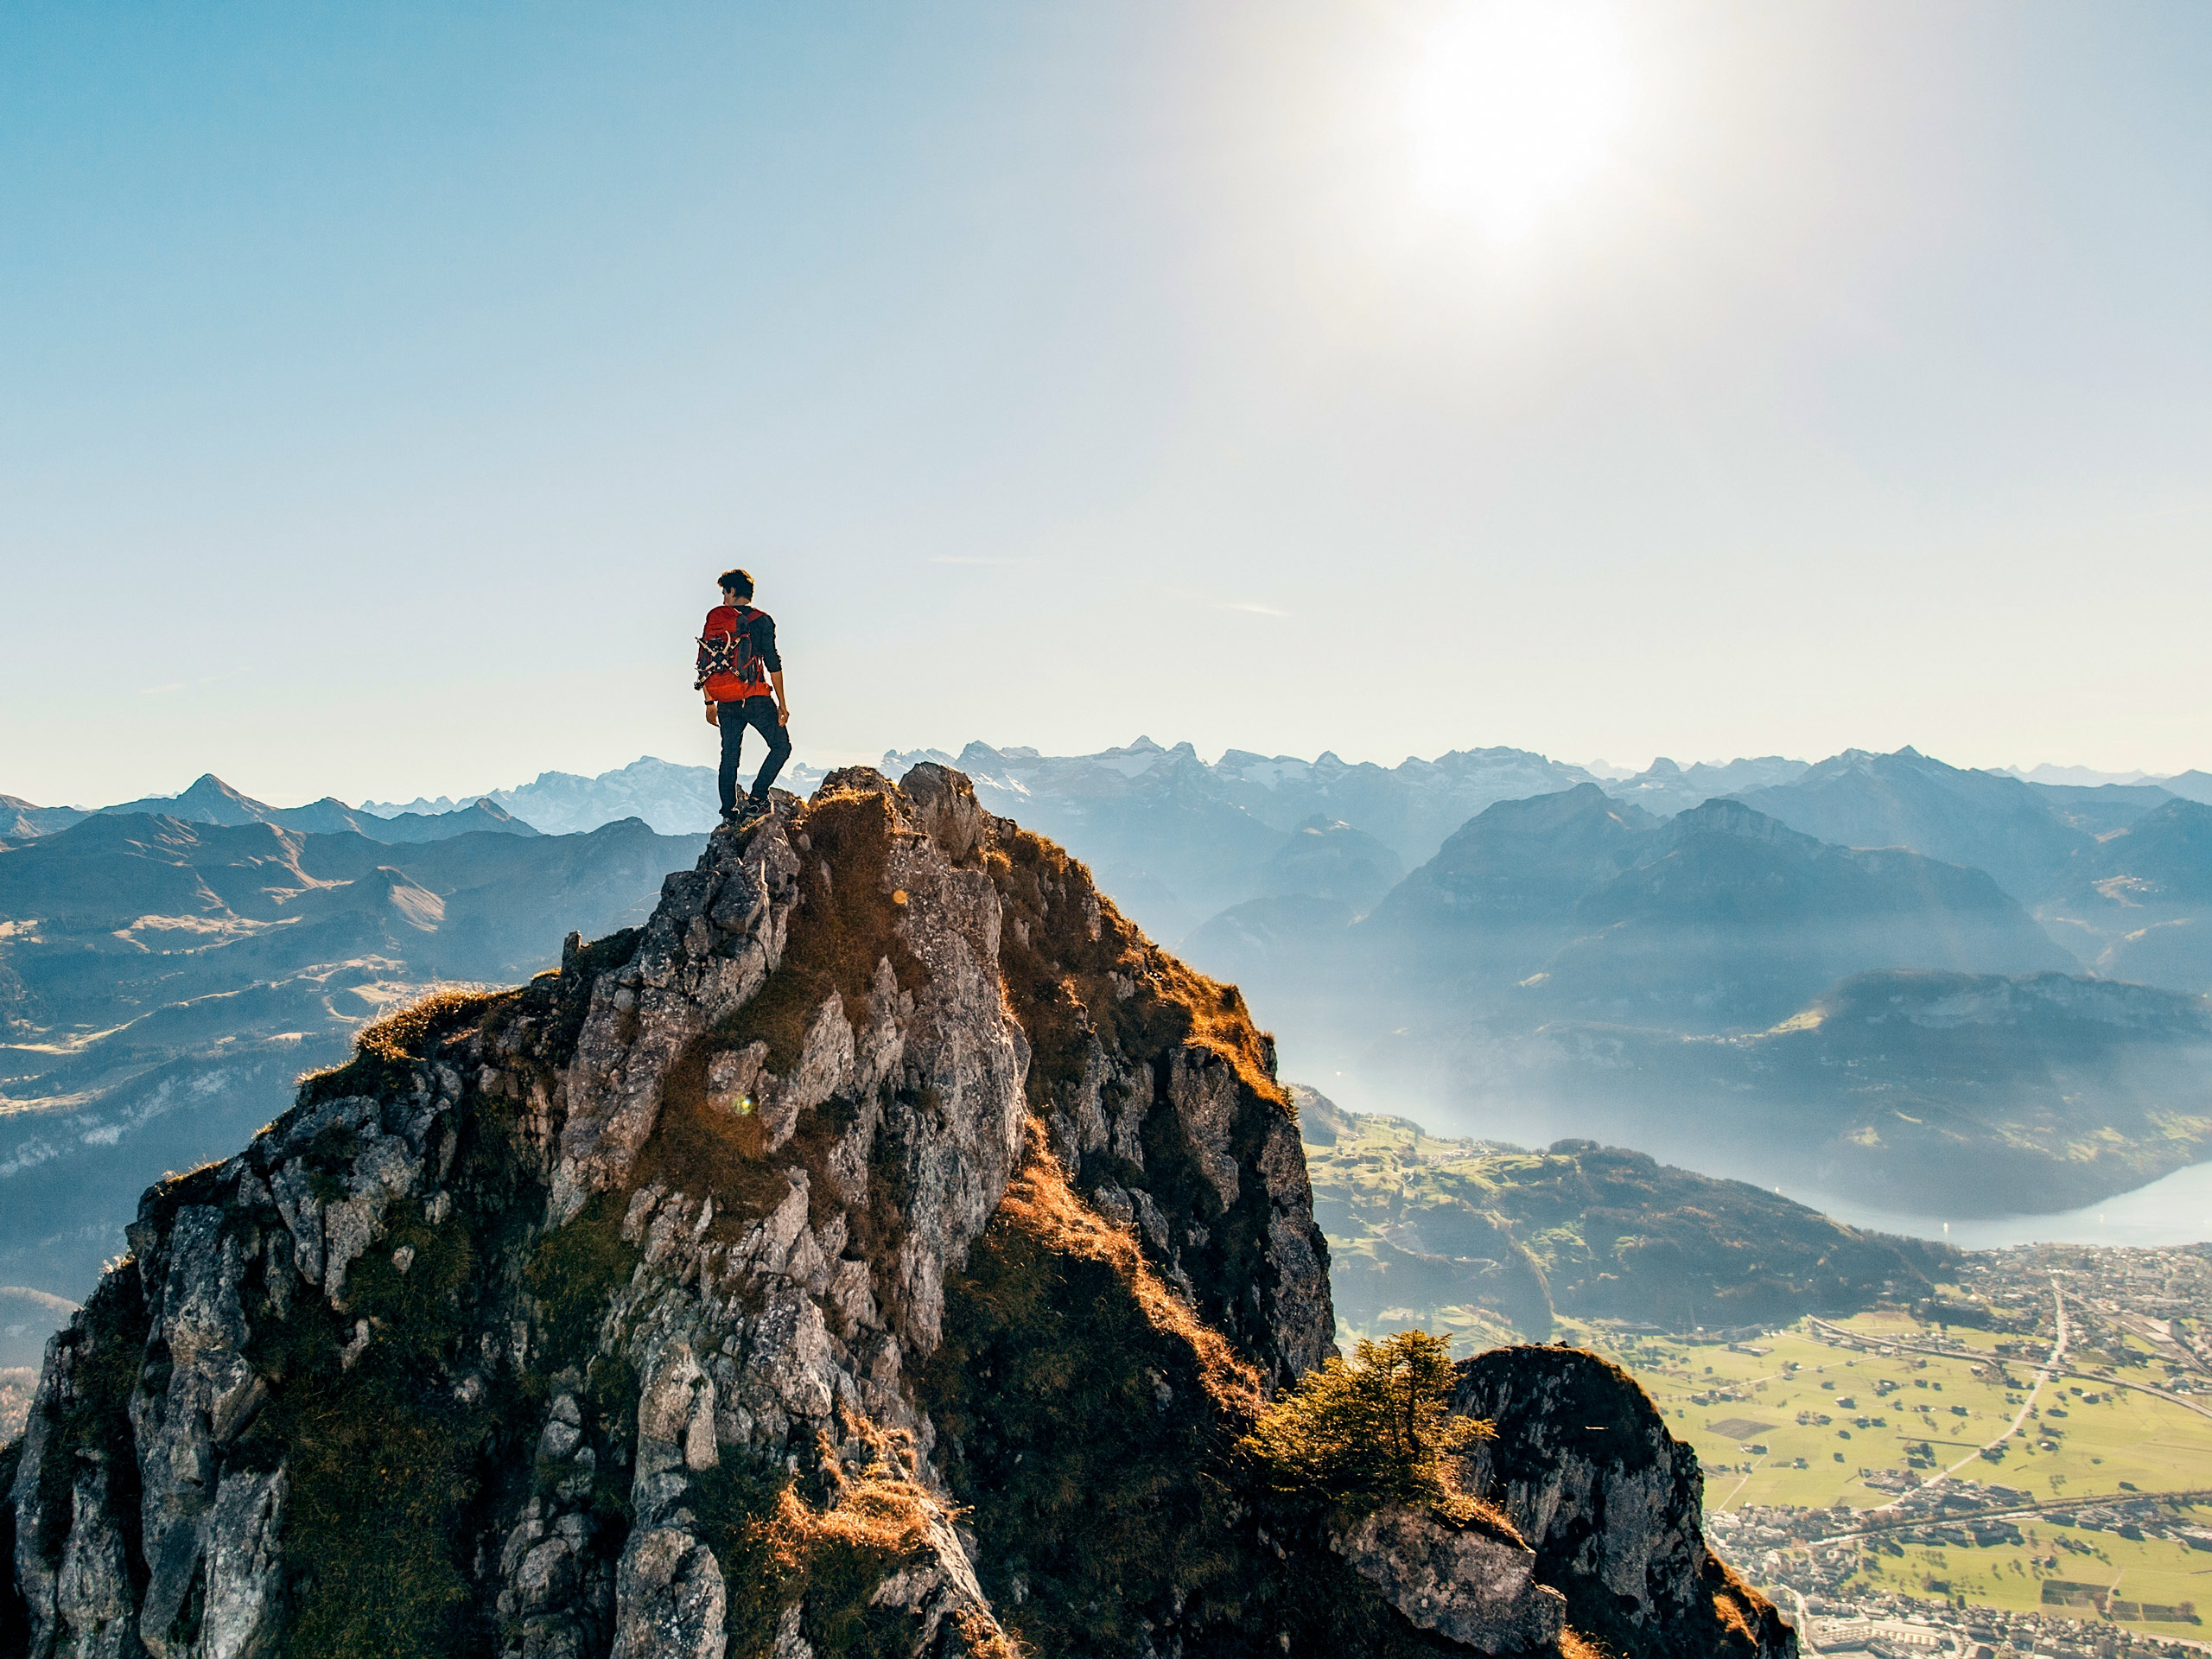 Hiker standing on top of tall rock peak looking out to mountains